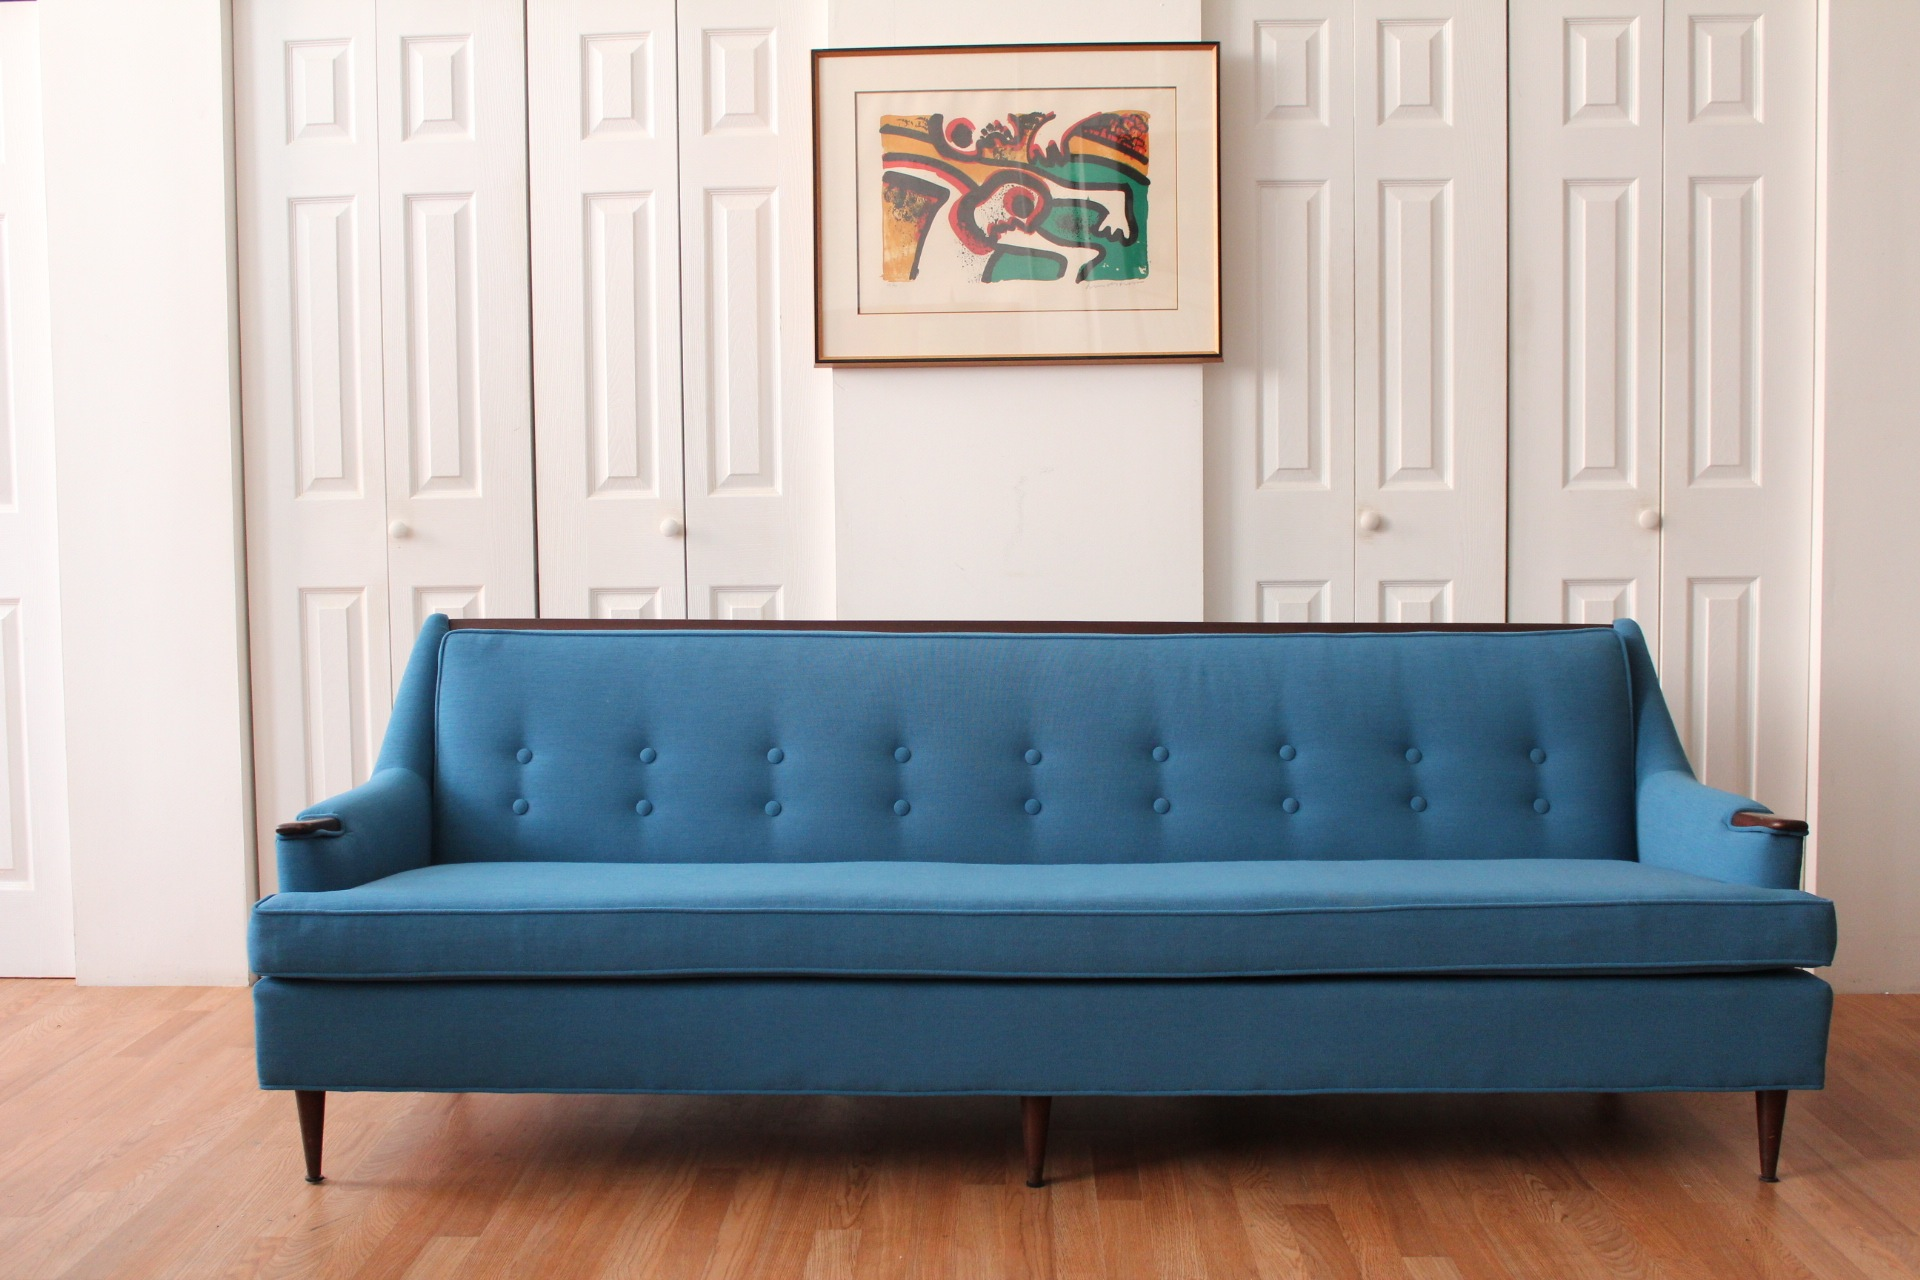 Copenhagen Blue Danish Sofa